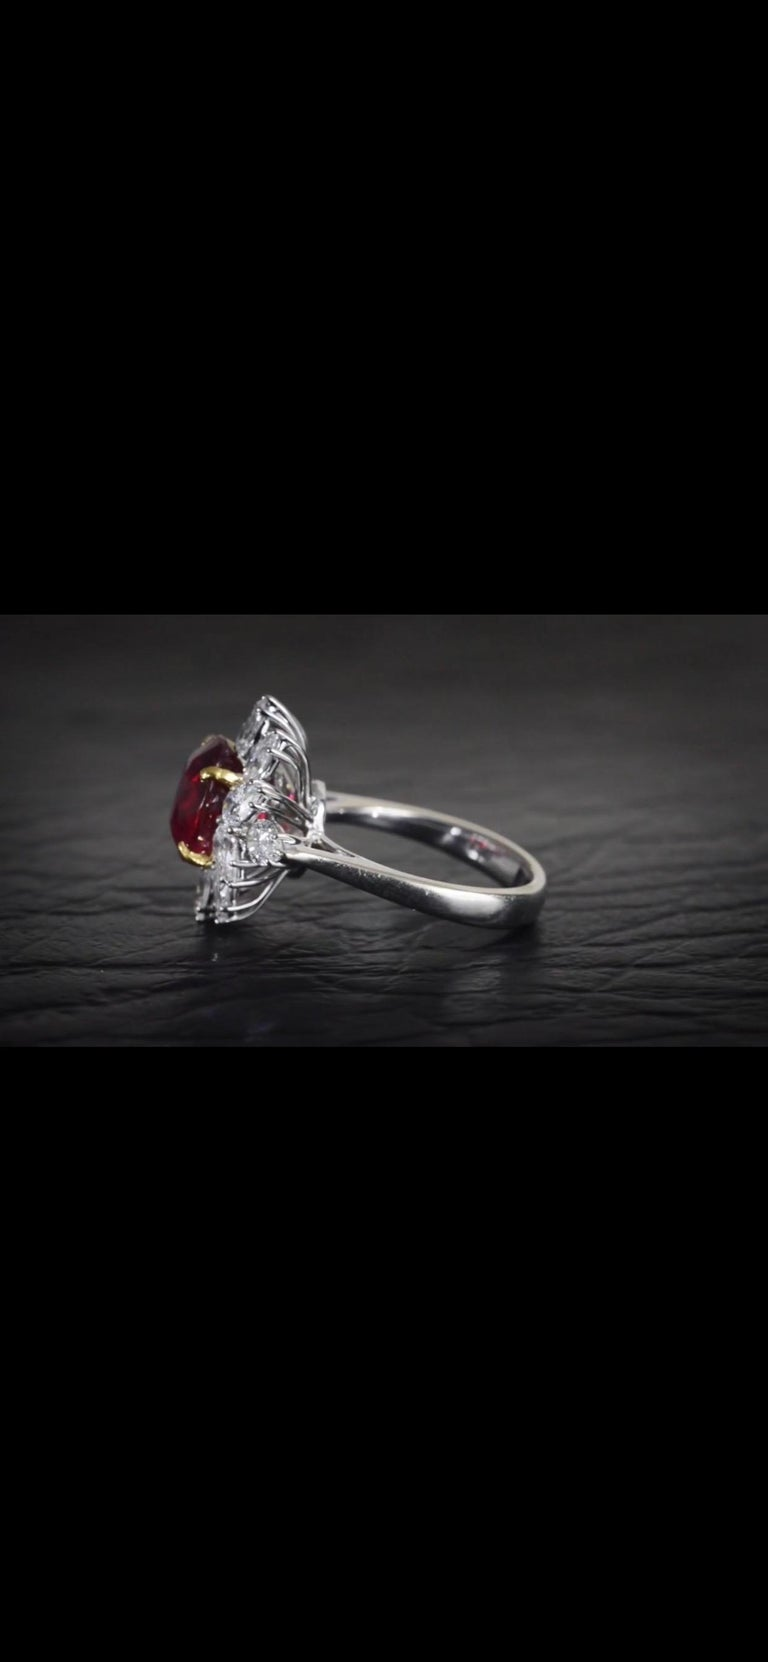 Triple Certified 4.09ct Natural Burmese Ruby & Diamond Cocktail Ring 18Kt Gold  For Sale 3